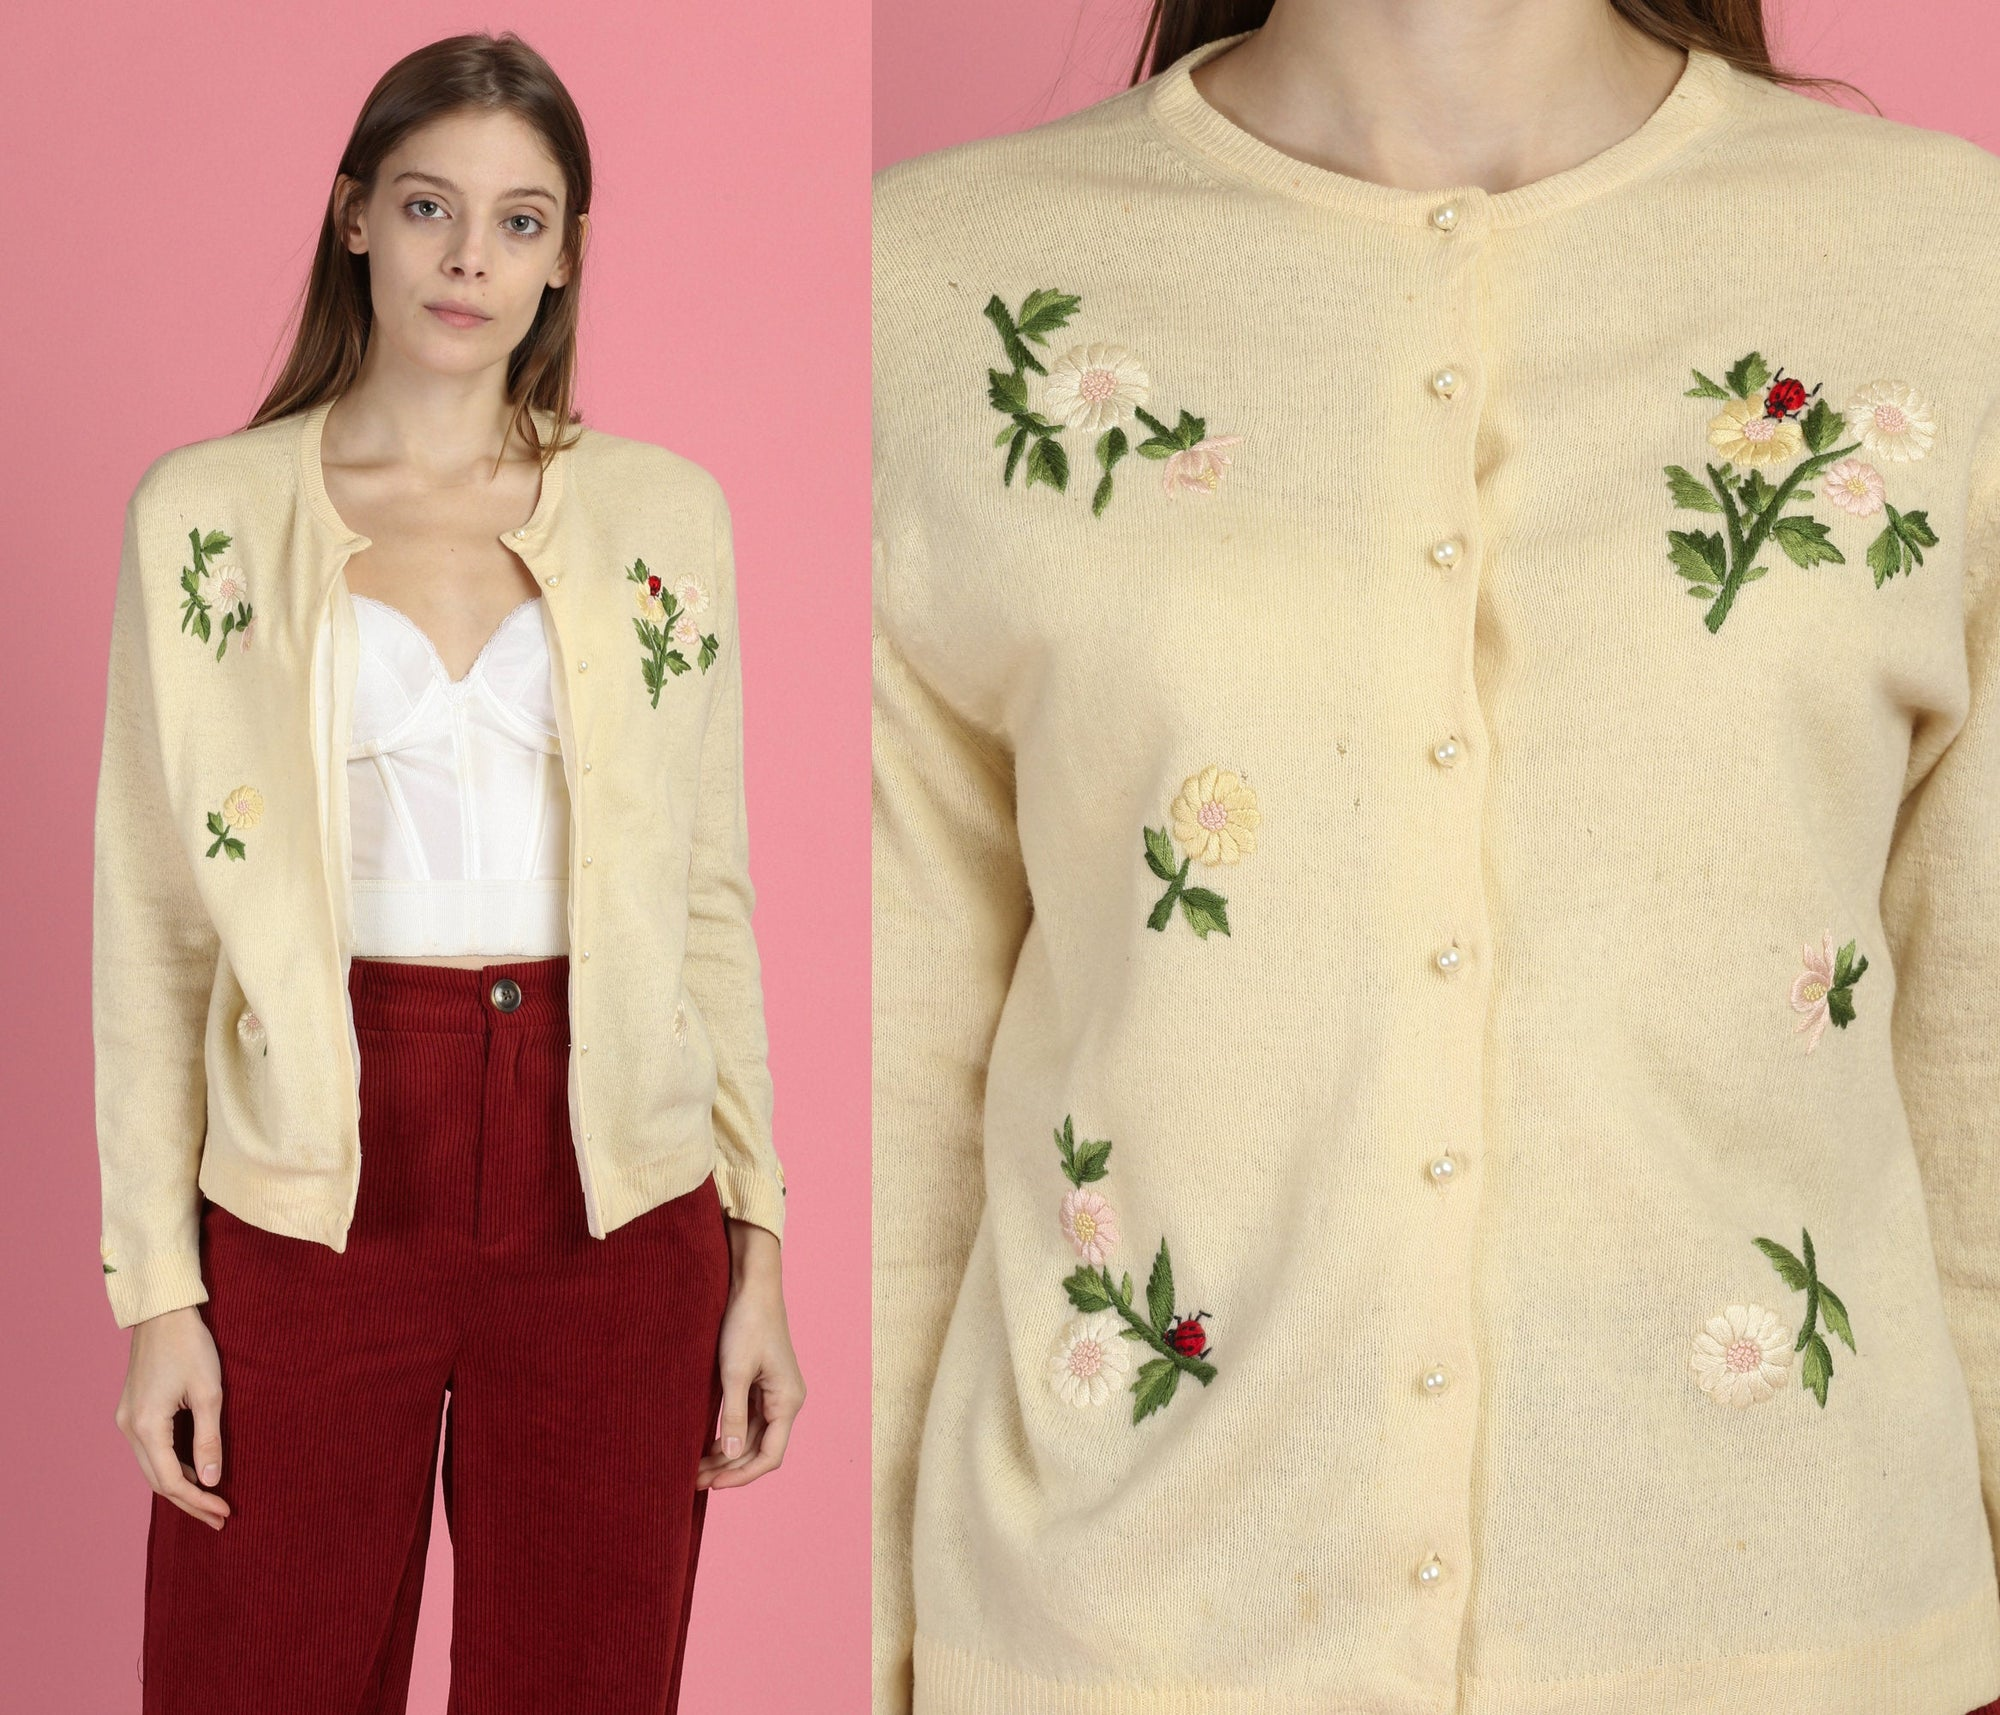 1950s Embroidered Floral Ladybug Cardigan - Large